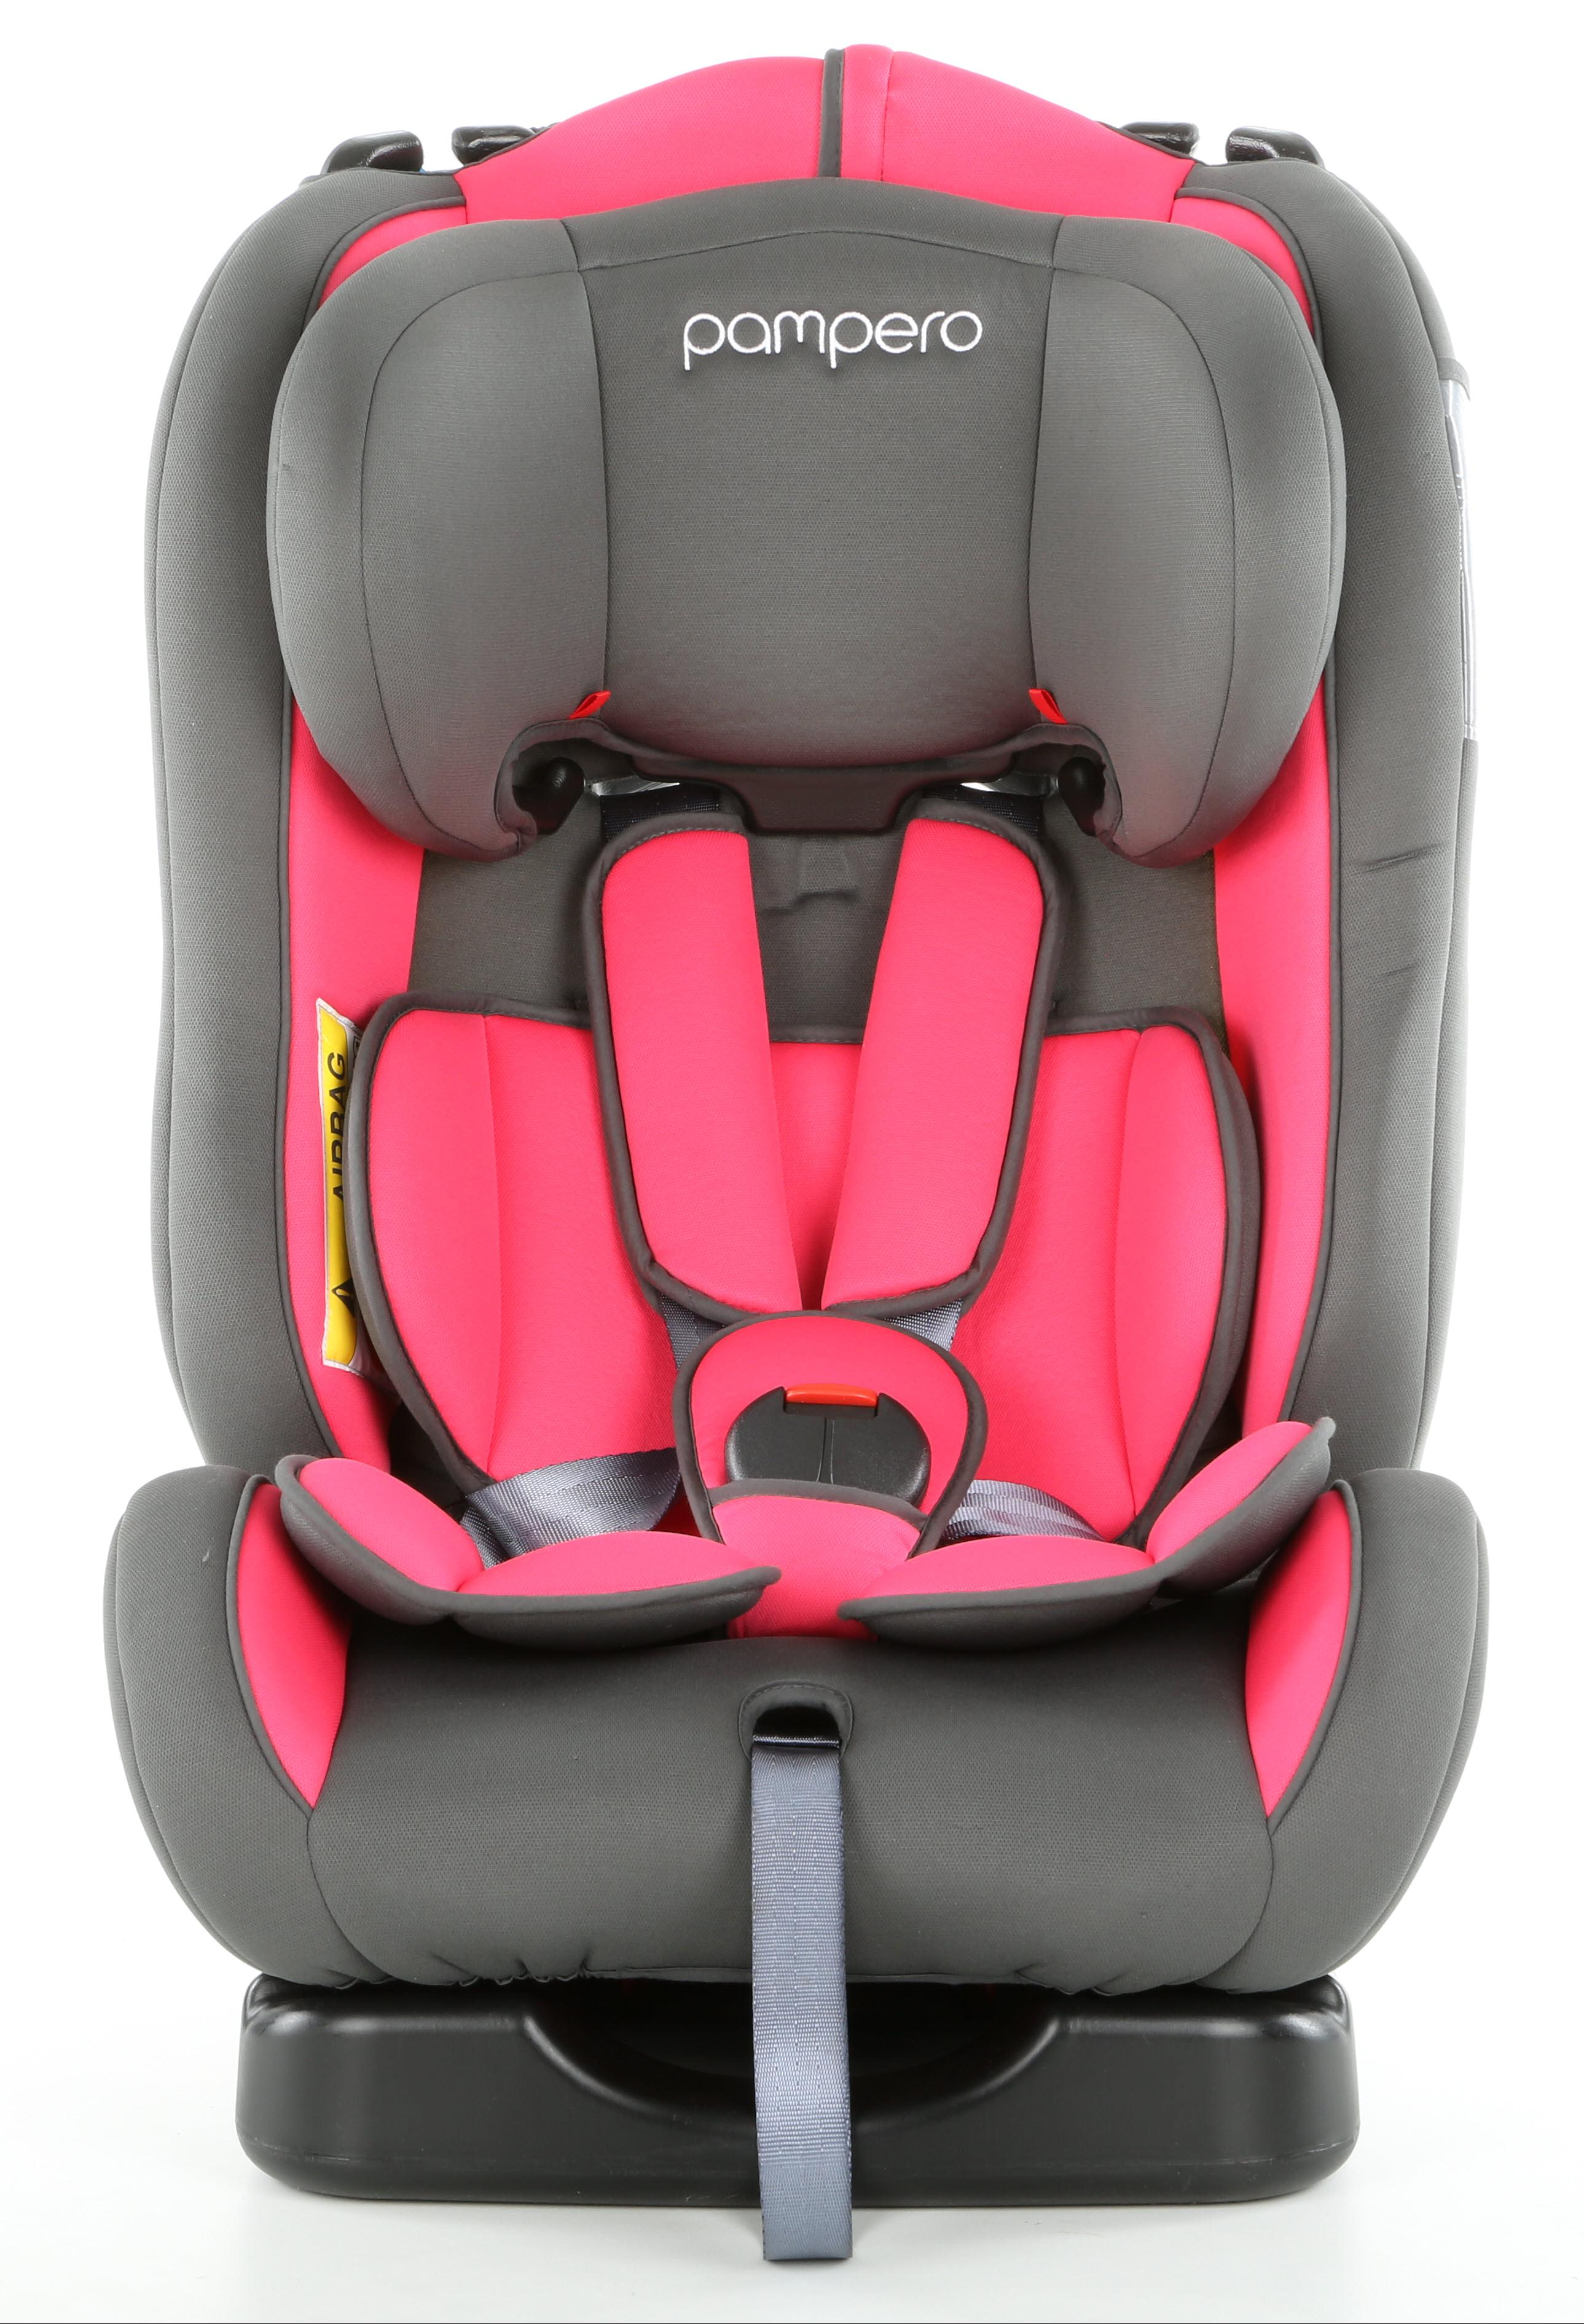 Pampero Cherub Baby Car Safety Seat In Pink